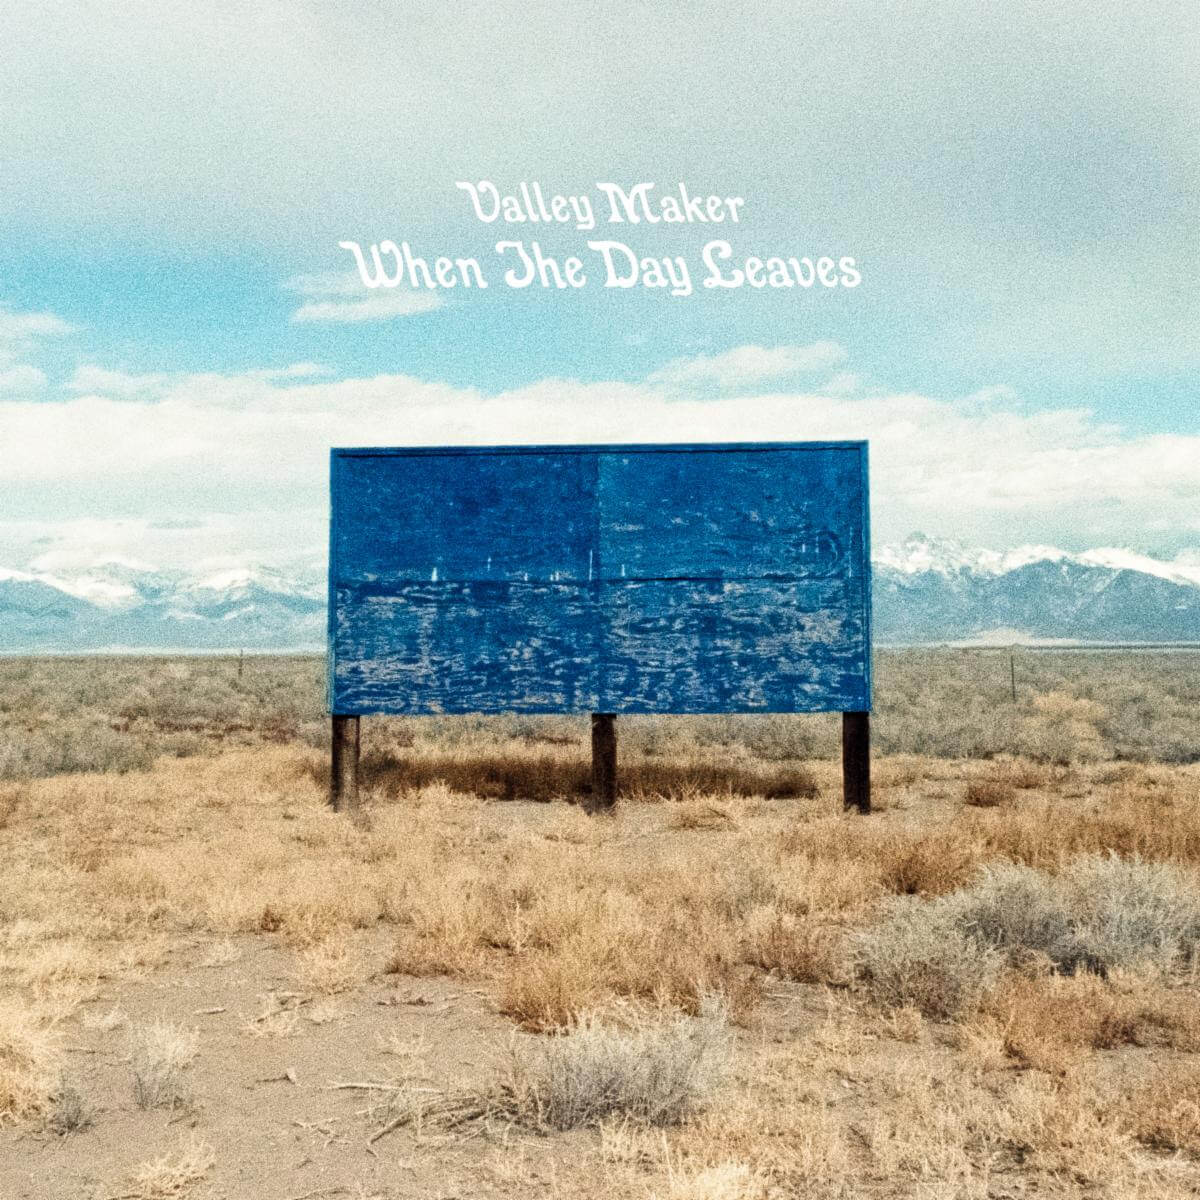 When the Day Leaves by Valley Maker album review by Katie Tymochenko. The full-length is now available via Frenchkiss Records